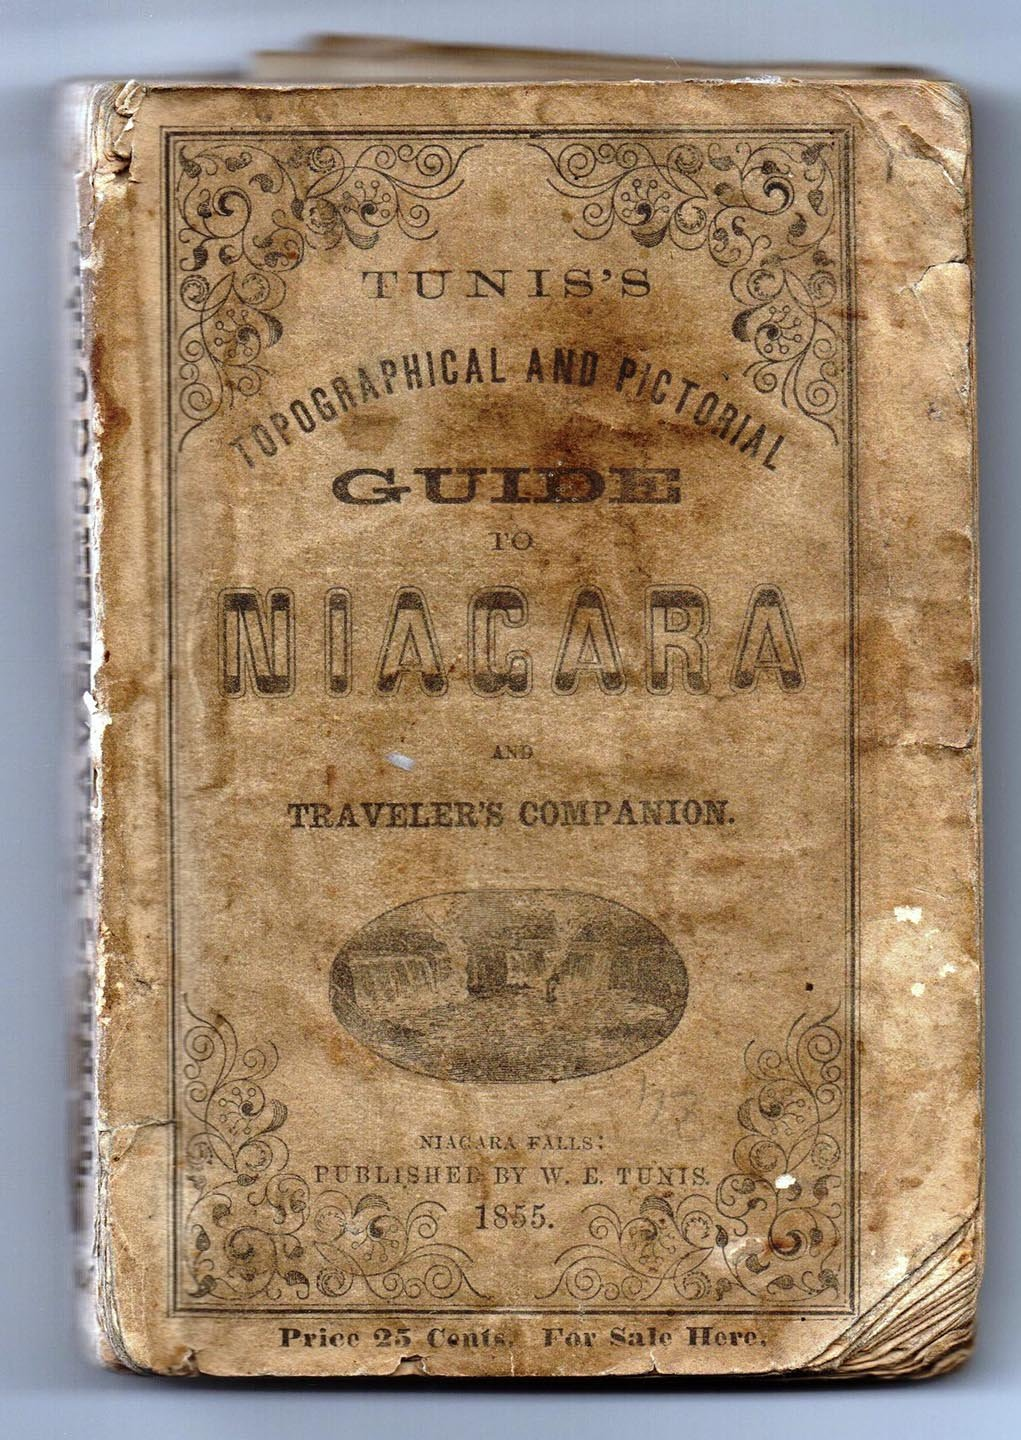 Tunis's Topographical and Pictorial Guide to Niagara